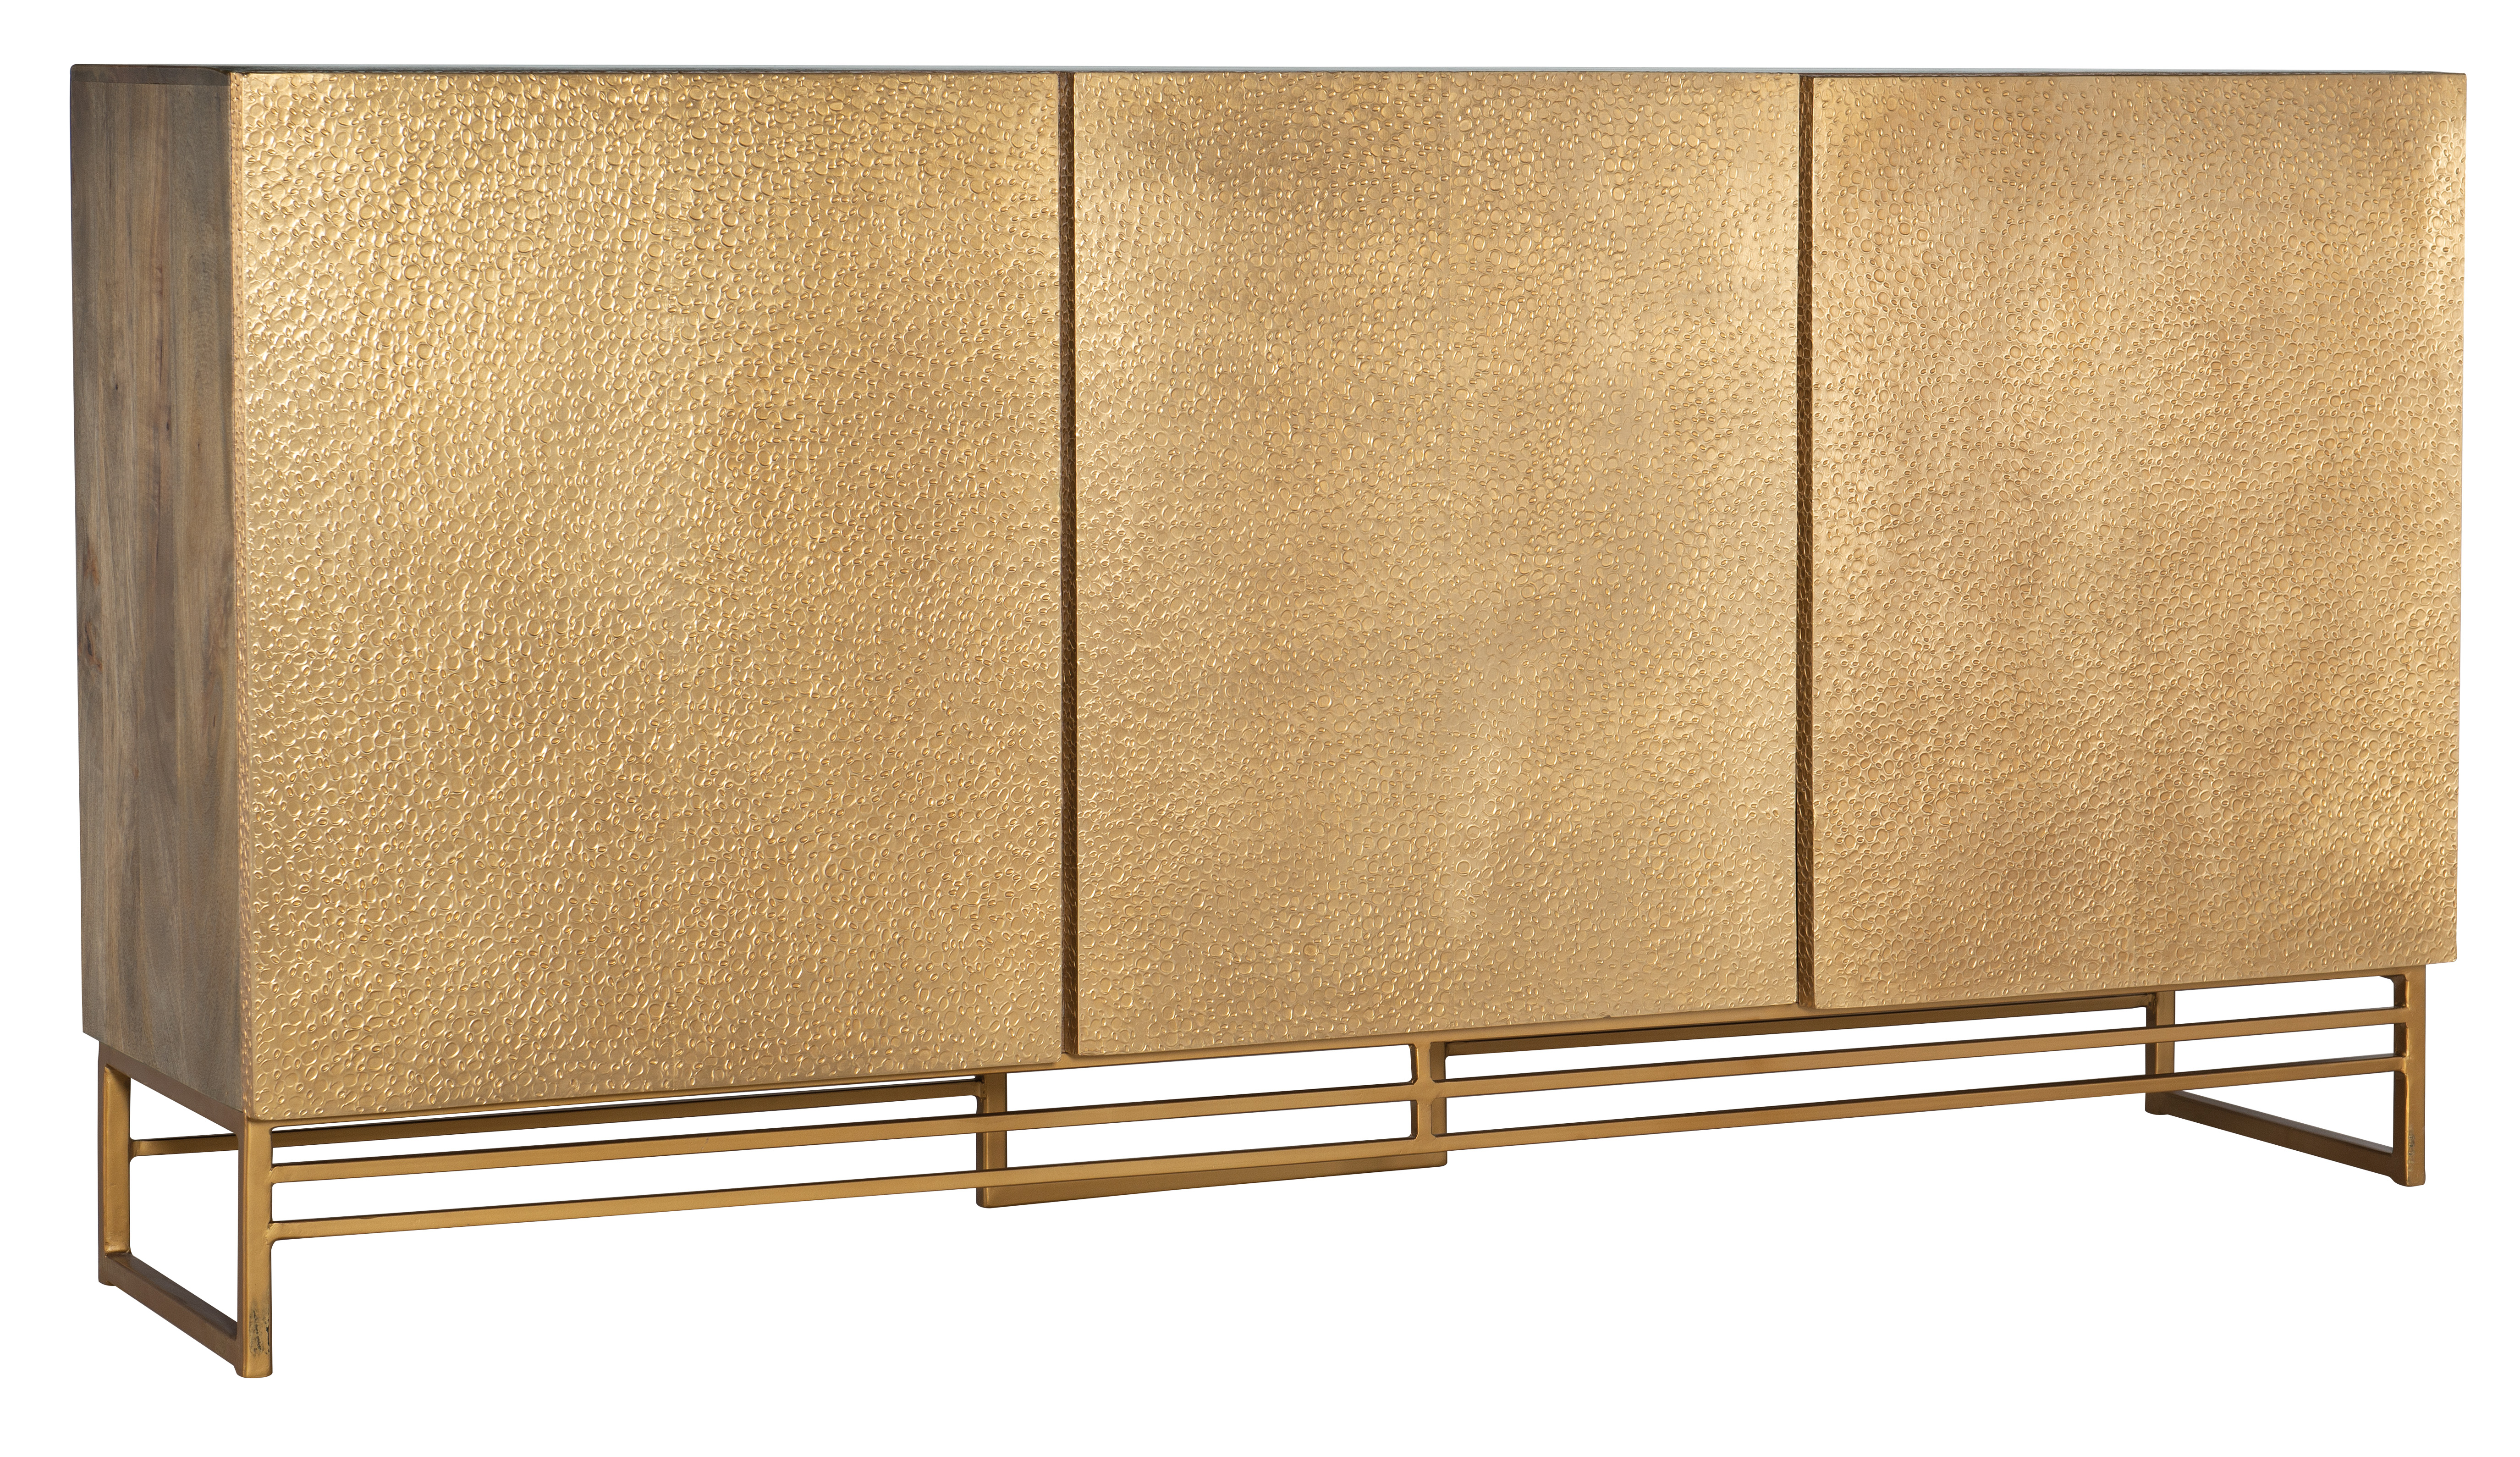 6007-55 69in Entertainment Center by Hooker Furniture at Mueller Furniture